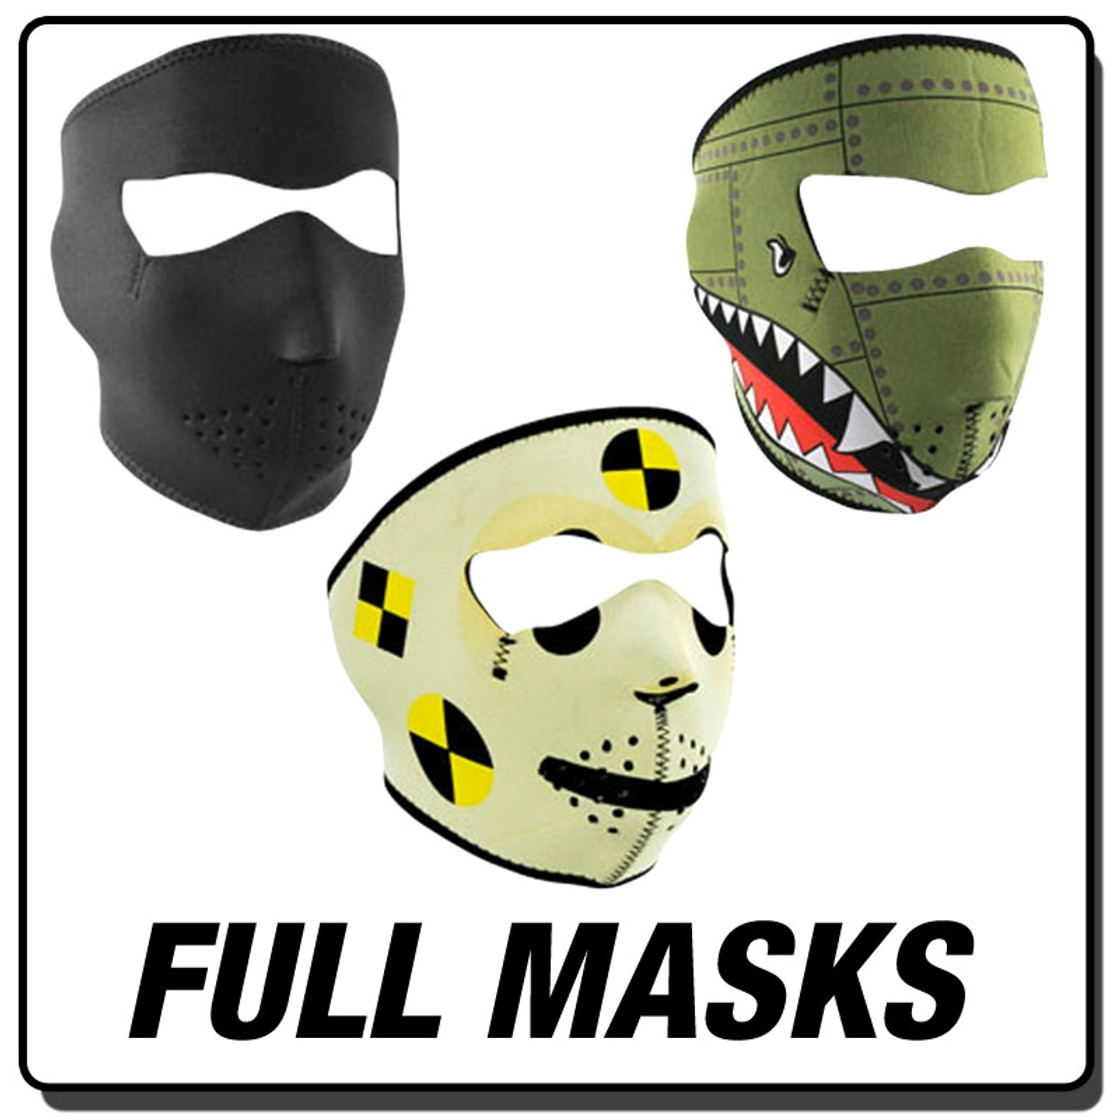 Neoprene - Full Masks